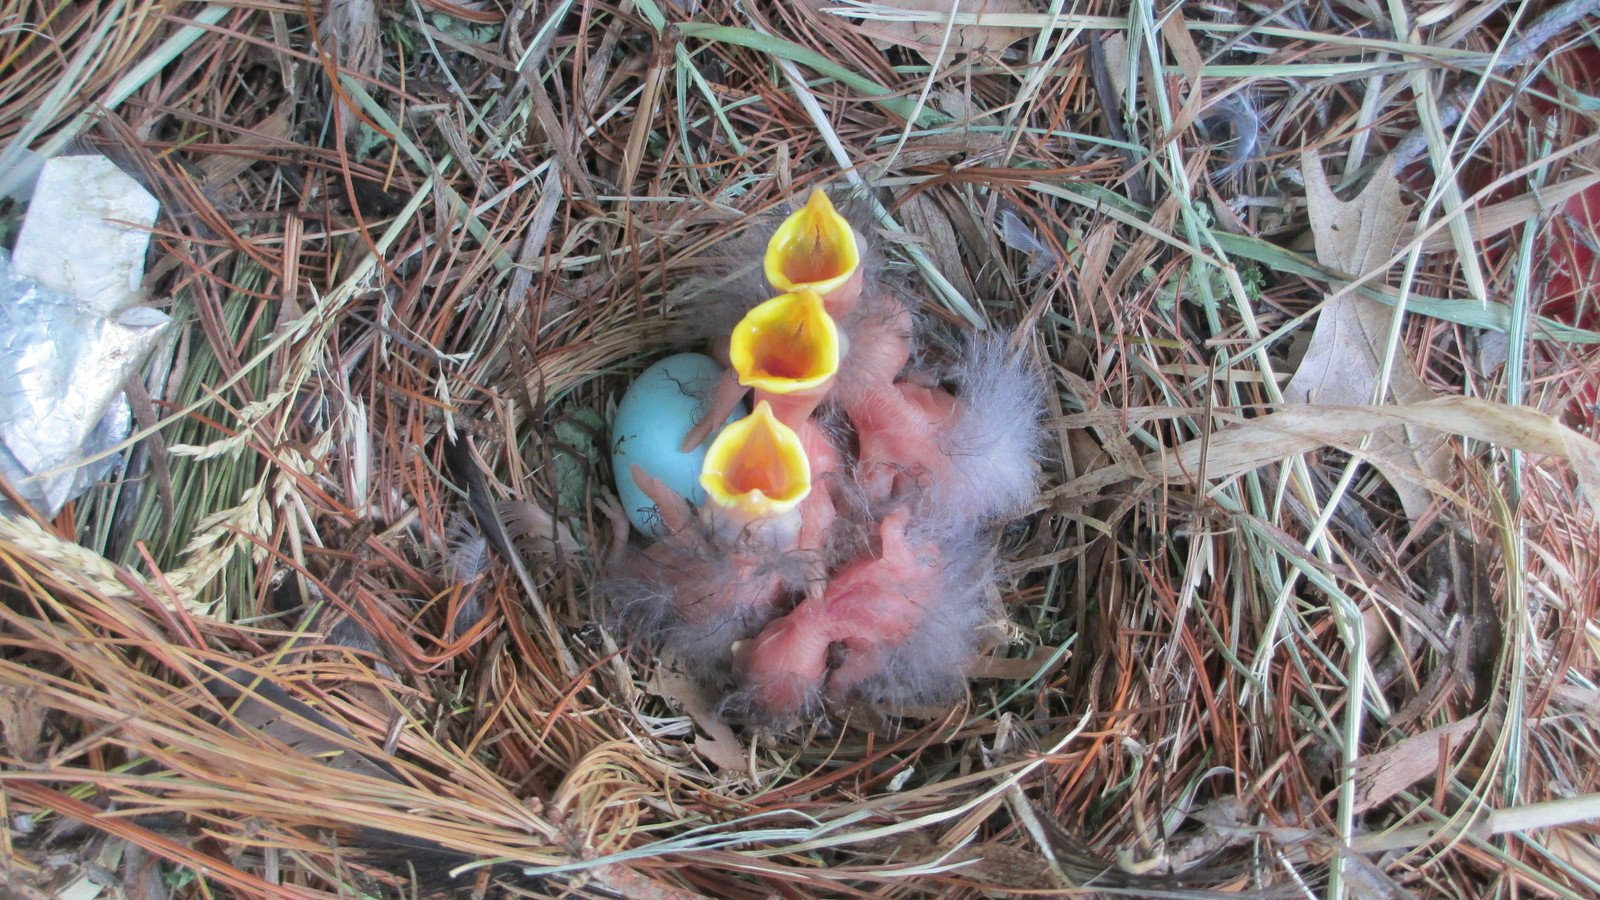 Free Baby birds in Nest Stock Photo - FreeImages.com